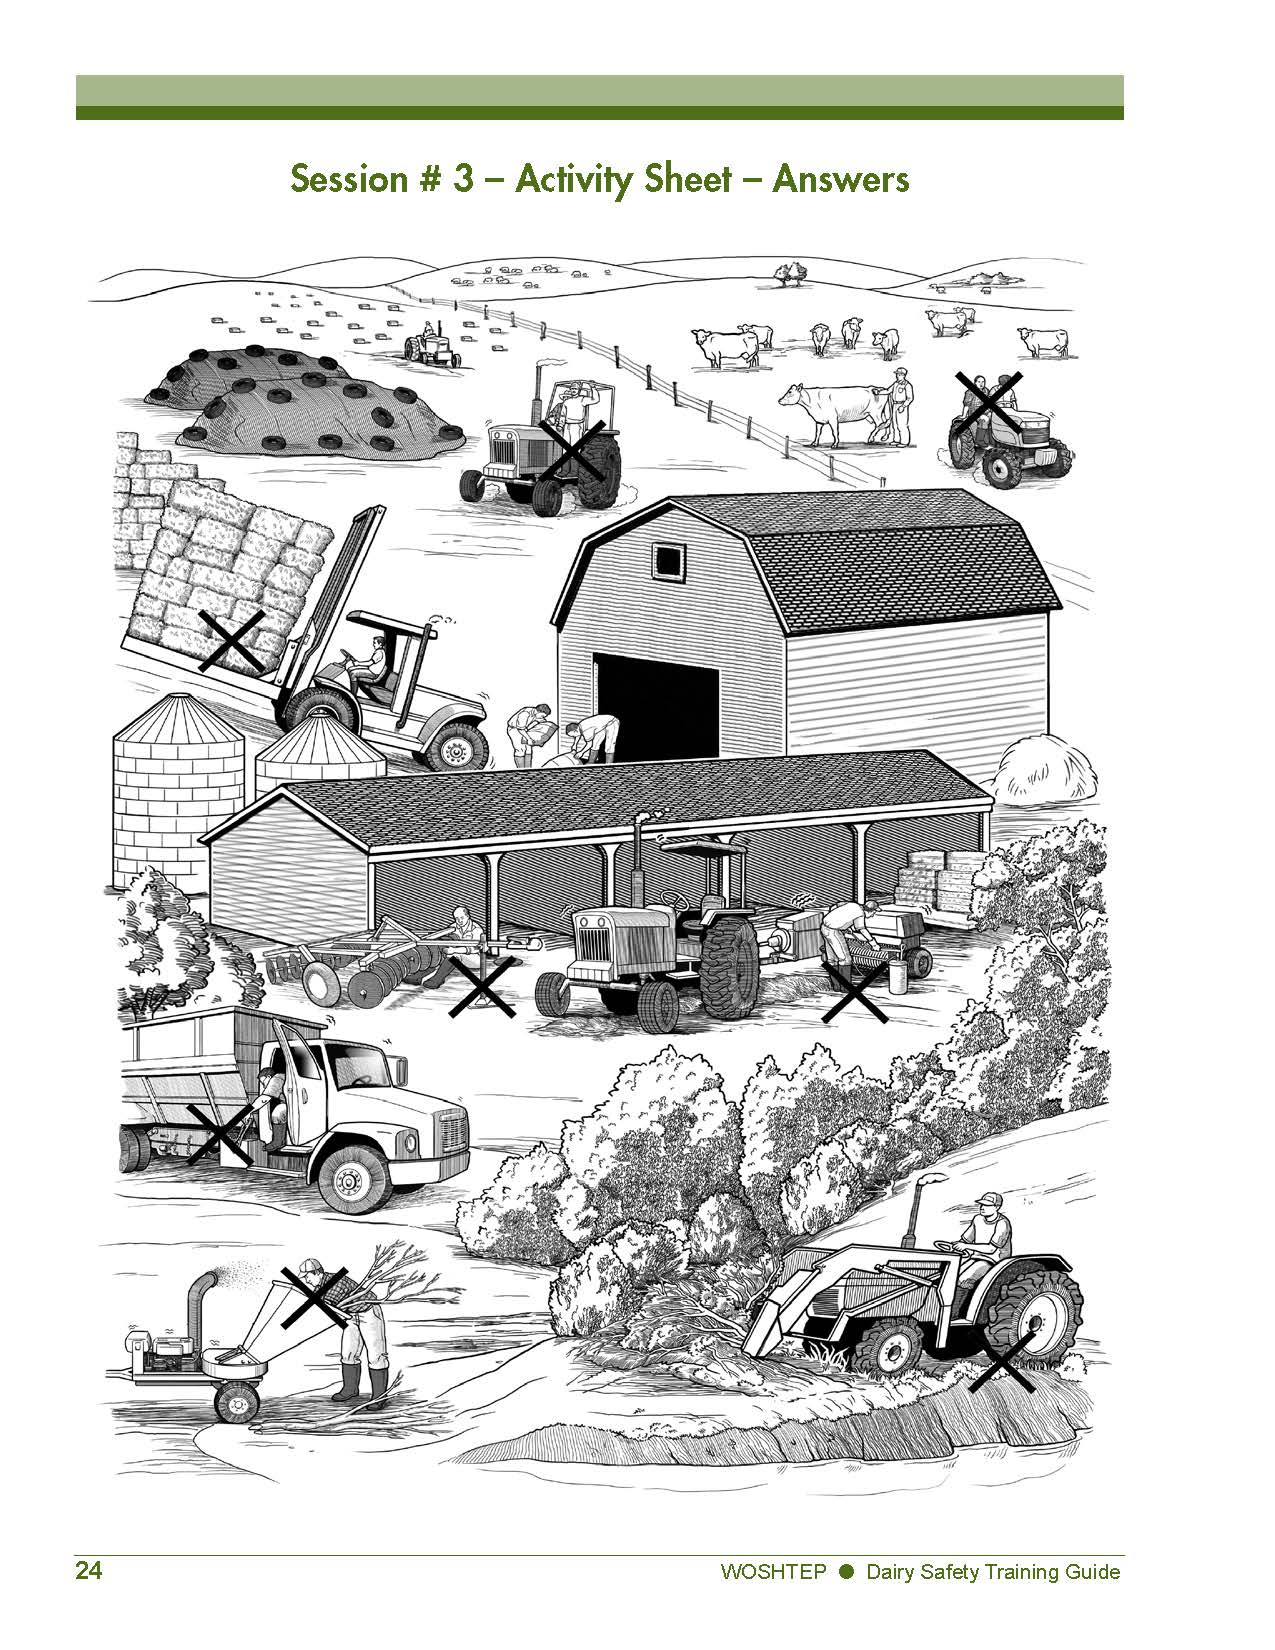 Free Dairy Safety Training Guide In English Or Spanish Western - Map of the us hazards comic